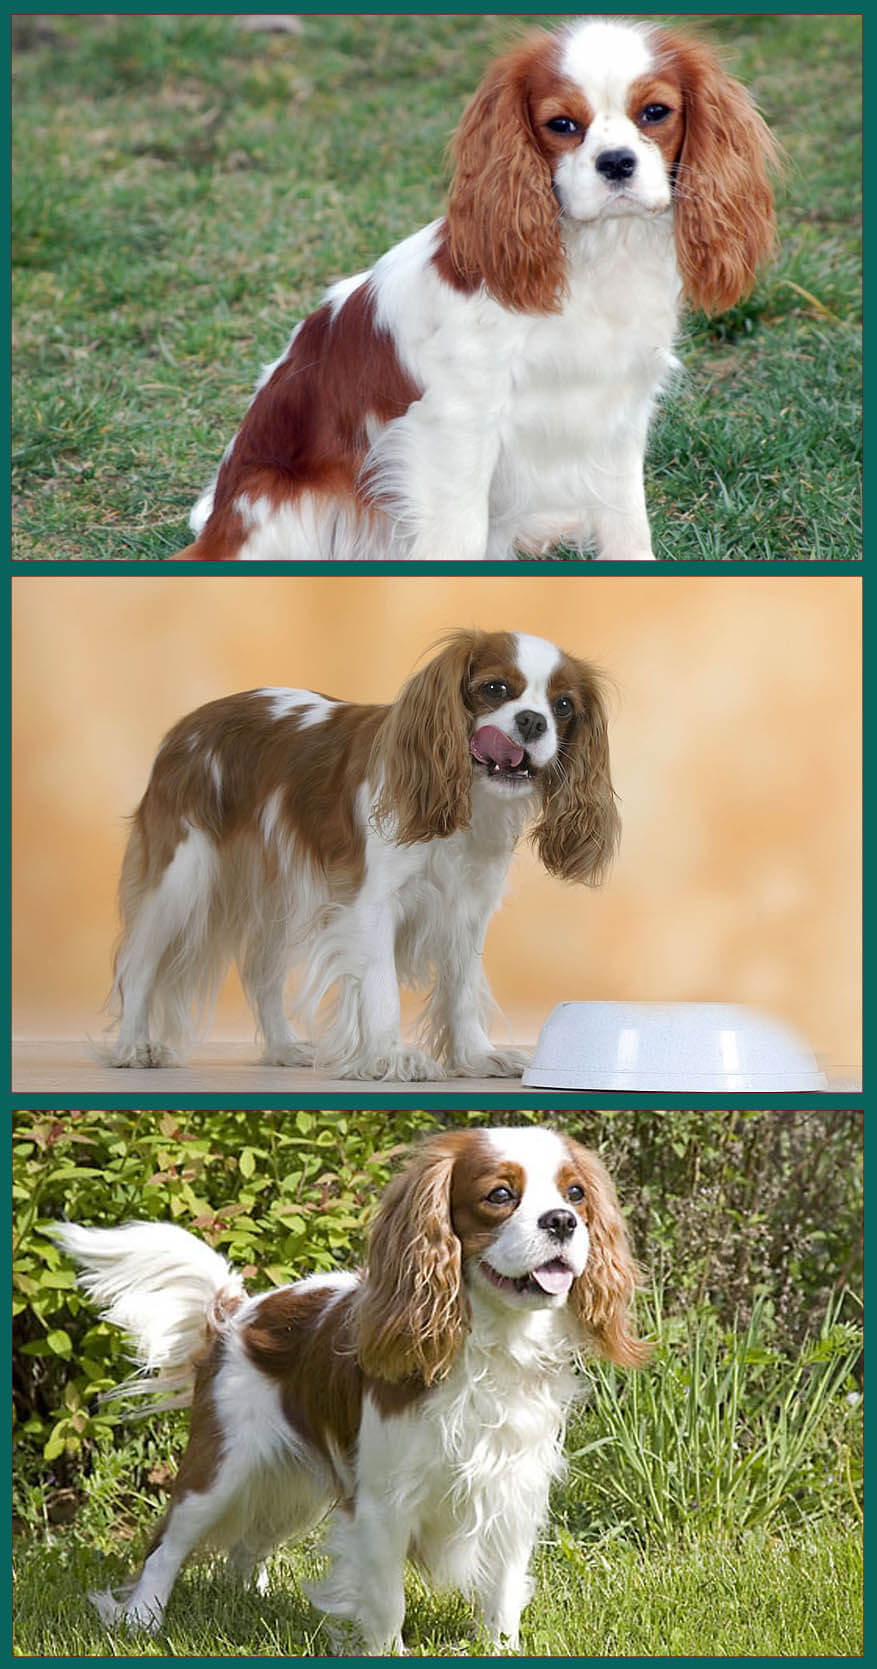 Some useful information about Cavalier King Charles Spaniel Dog